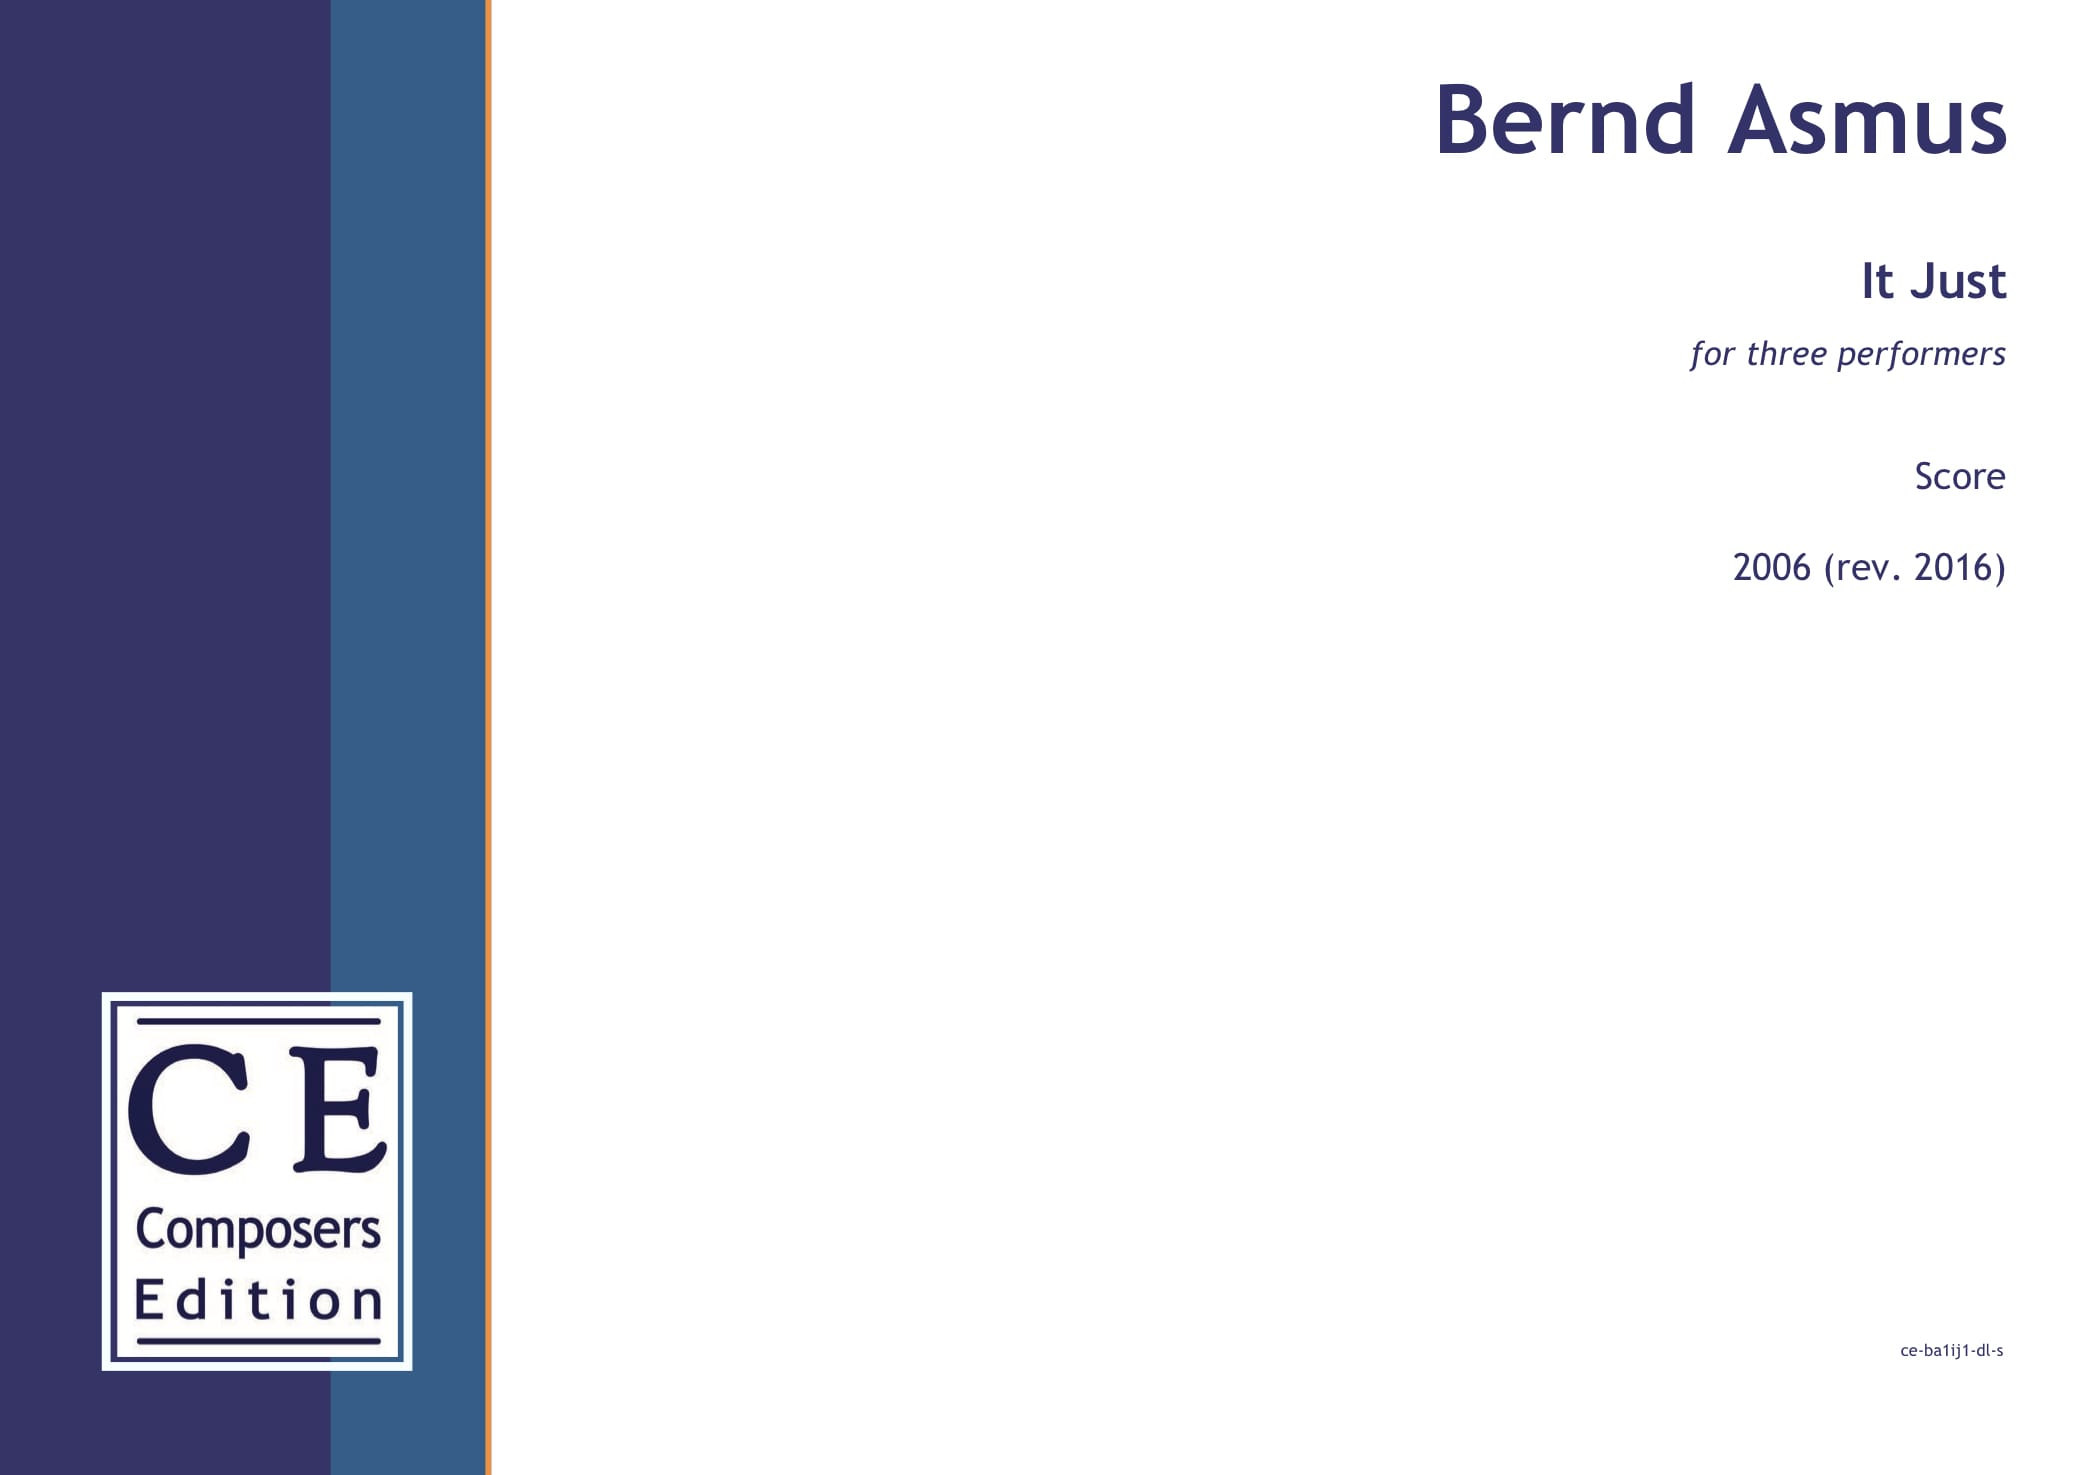 Bernd Asmus: It Just for three performers